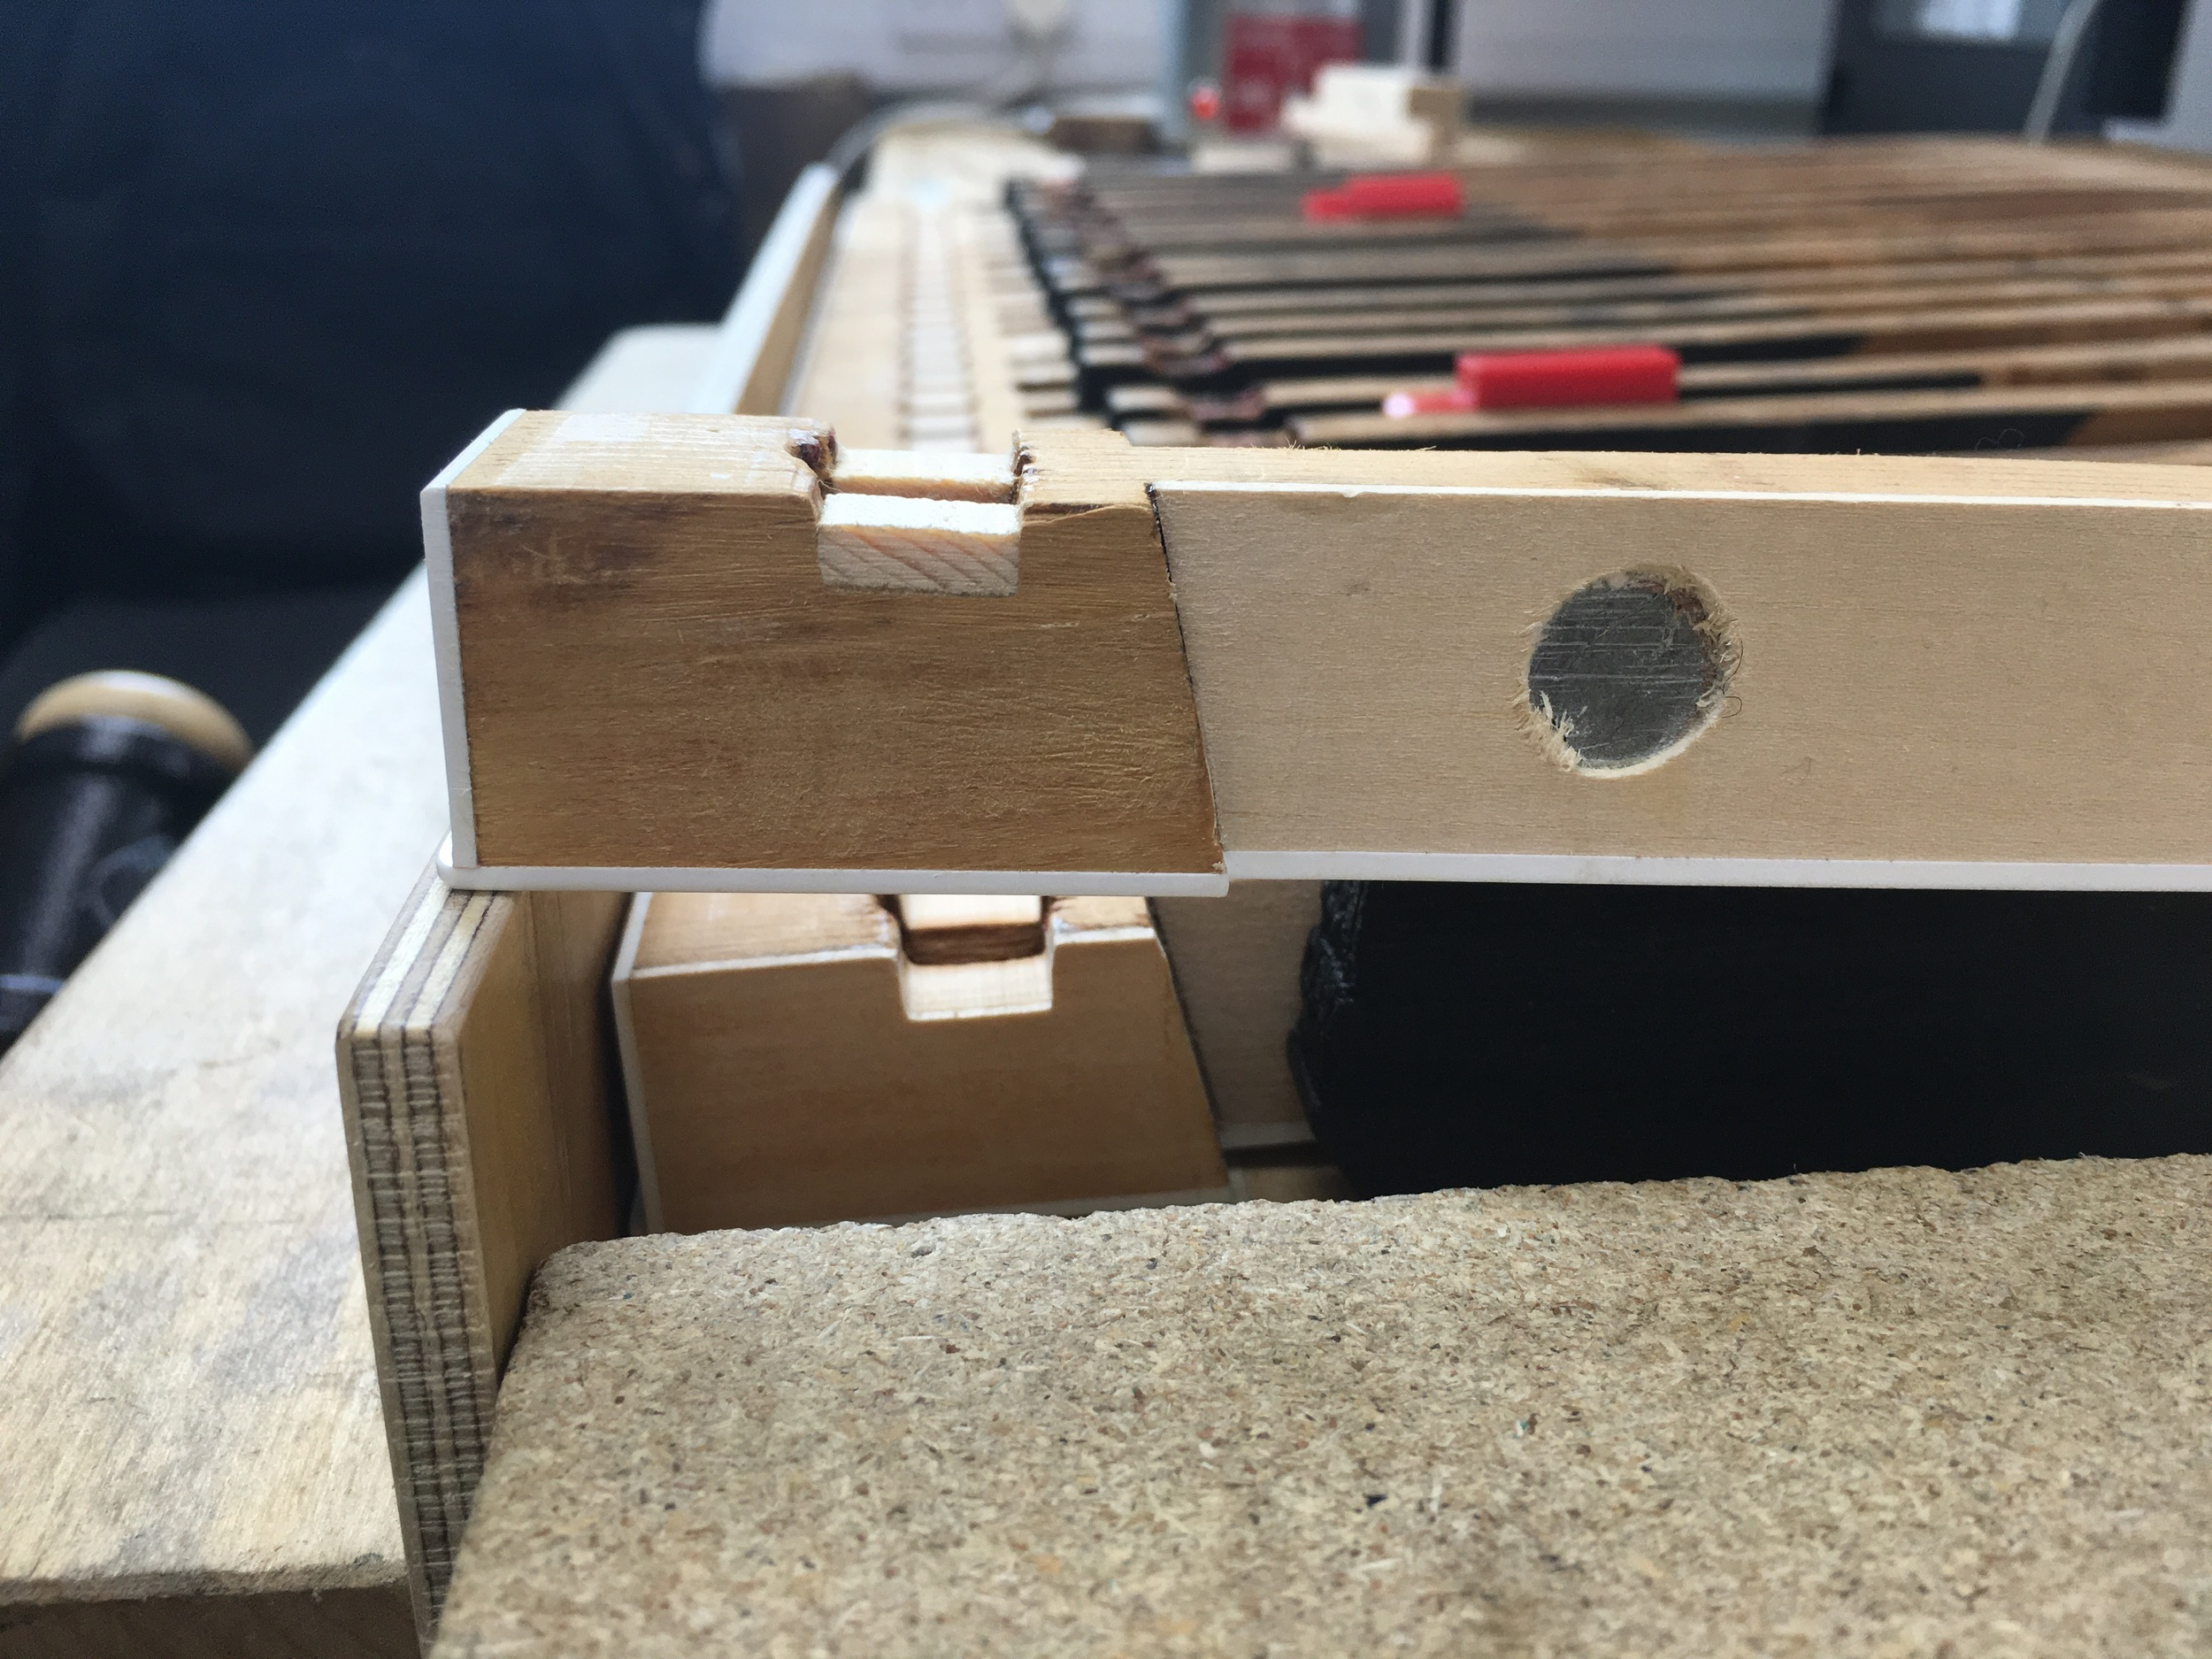 New wood inserted to facilitate correct position of new bushing felts